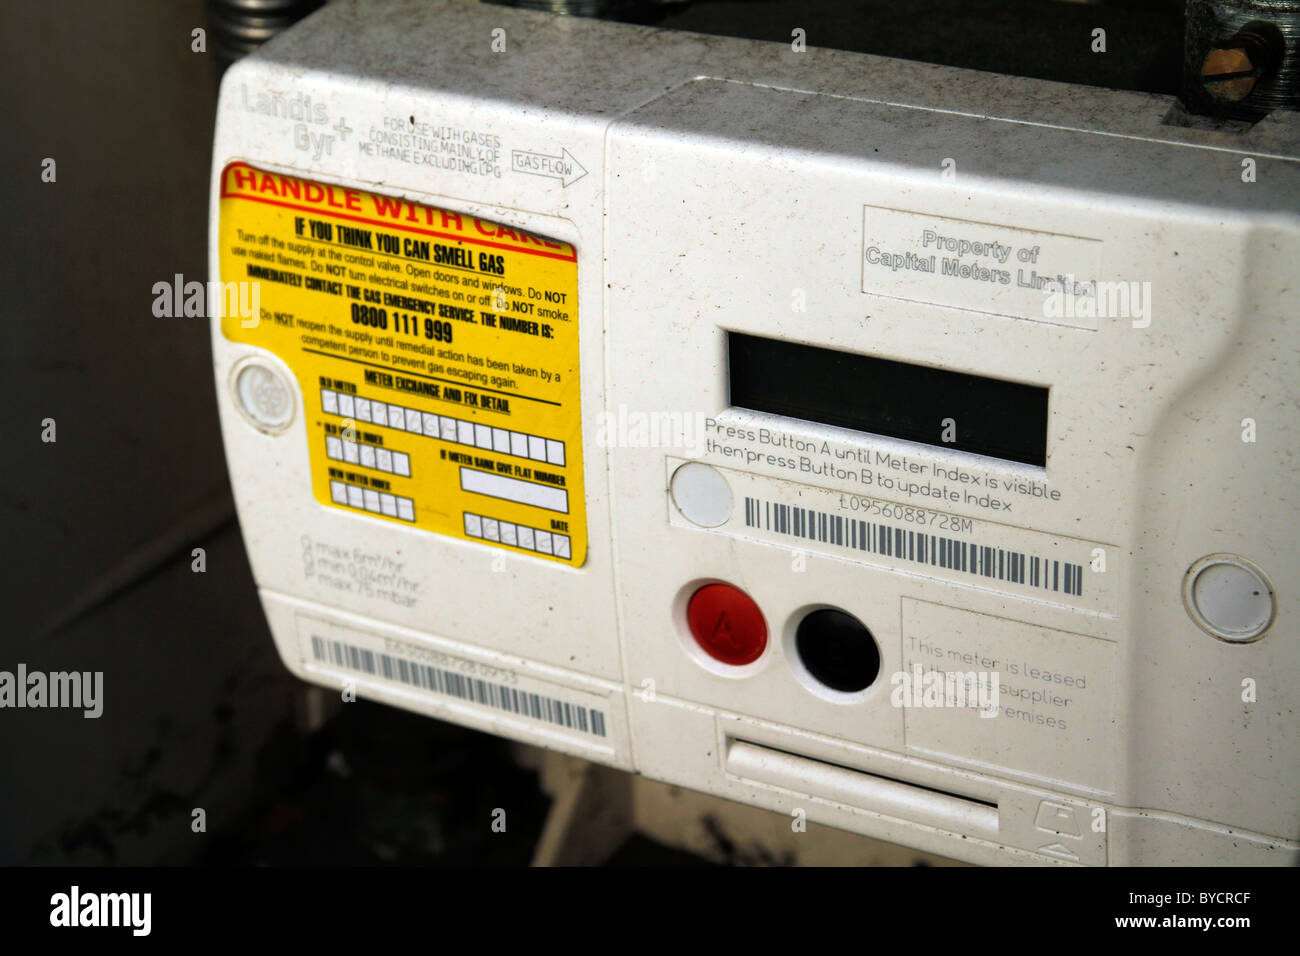 UK. EXTERIOR GAS METER IN A LONDON HOUSE - Stock Image